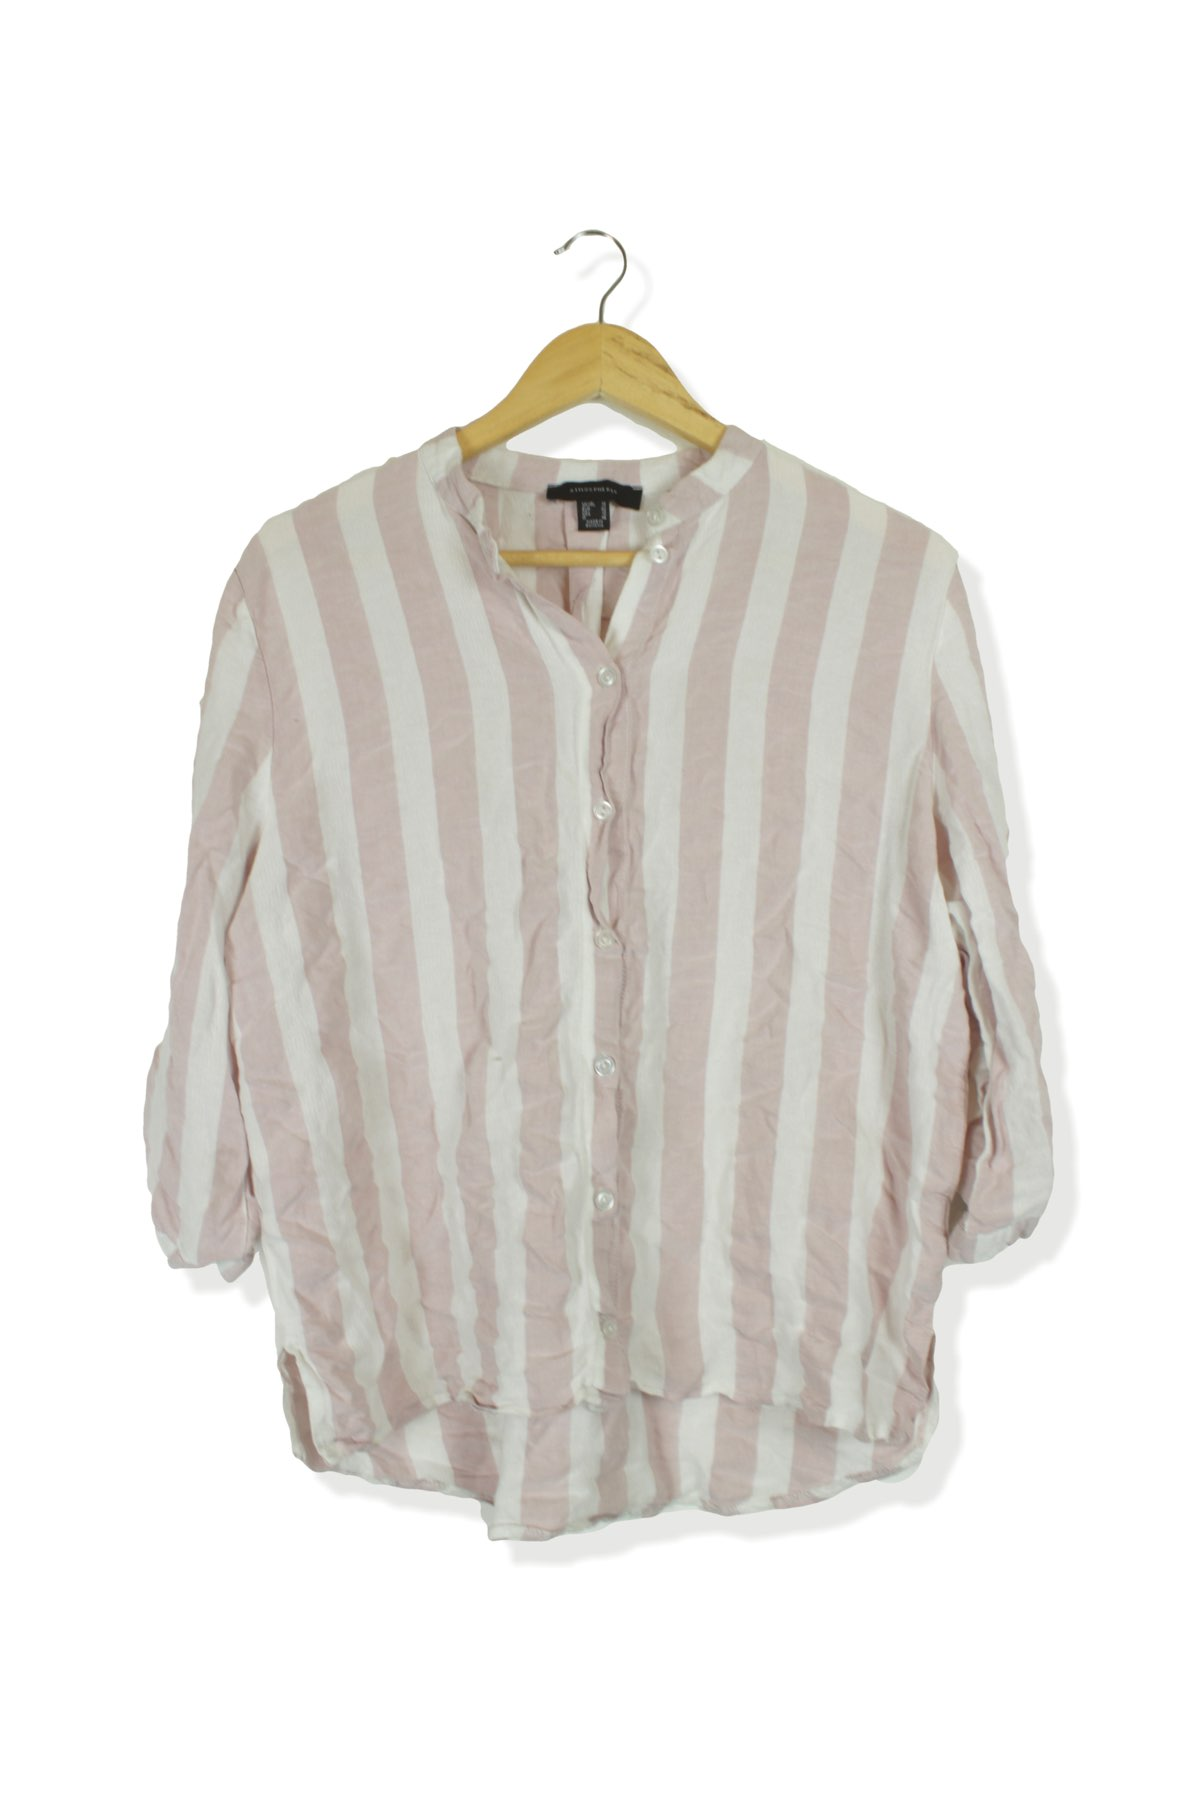 e1aff6630 HomeWomenAtmosphere white & pink striped summer blouse shirt top Size 14.  Previous. Second Hand Clothes